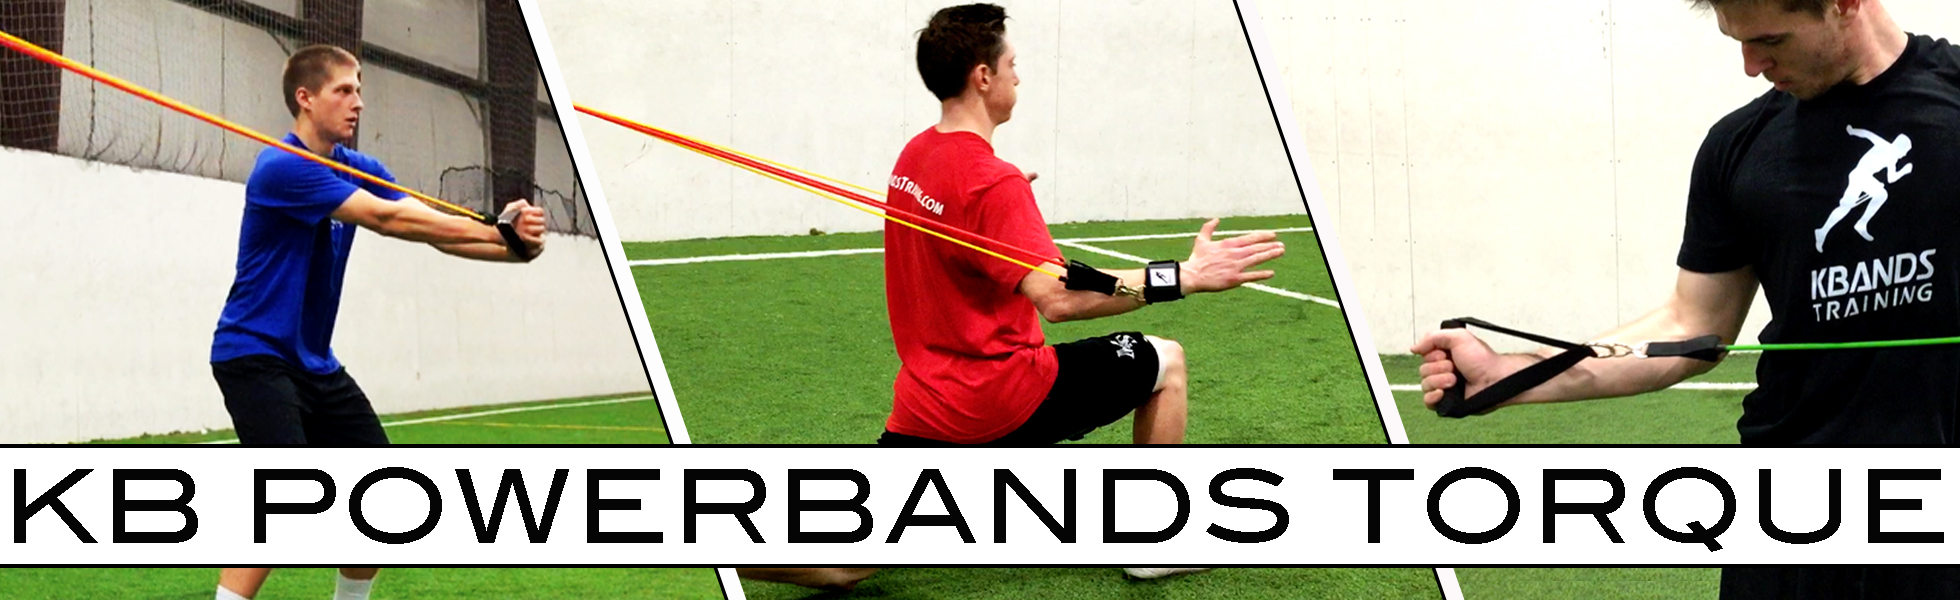 KB Powerbands Torque | Upper Body Resistance Bands Workout